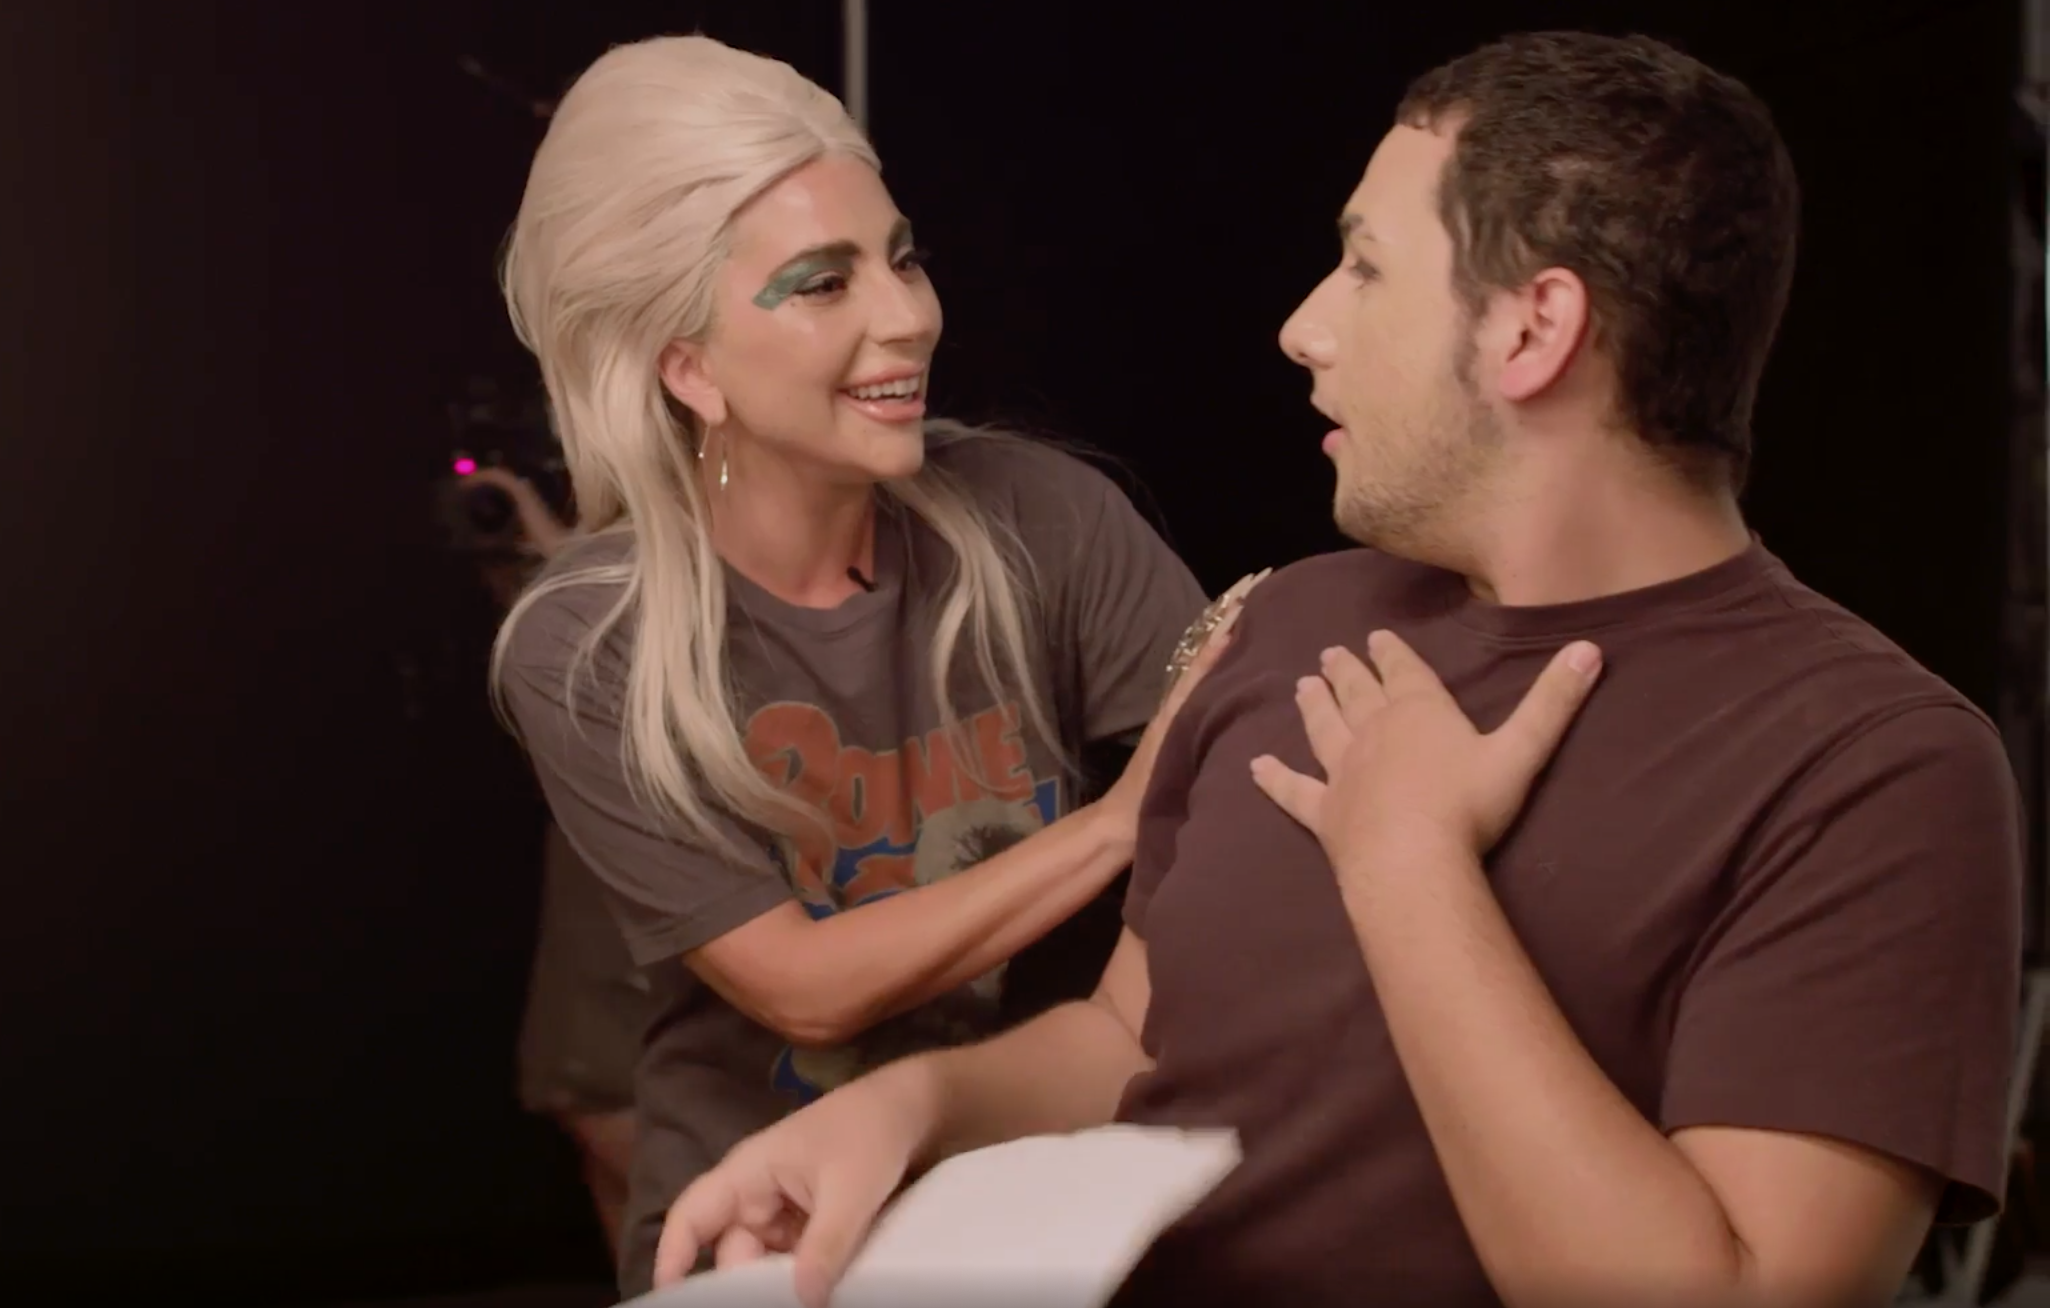 Lady Gaga meets a 19-year-old superman in an emotional video. (Screen capture via Allure Magazine)